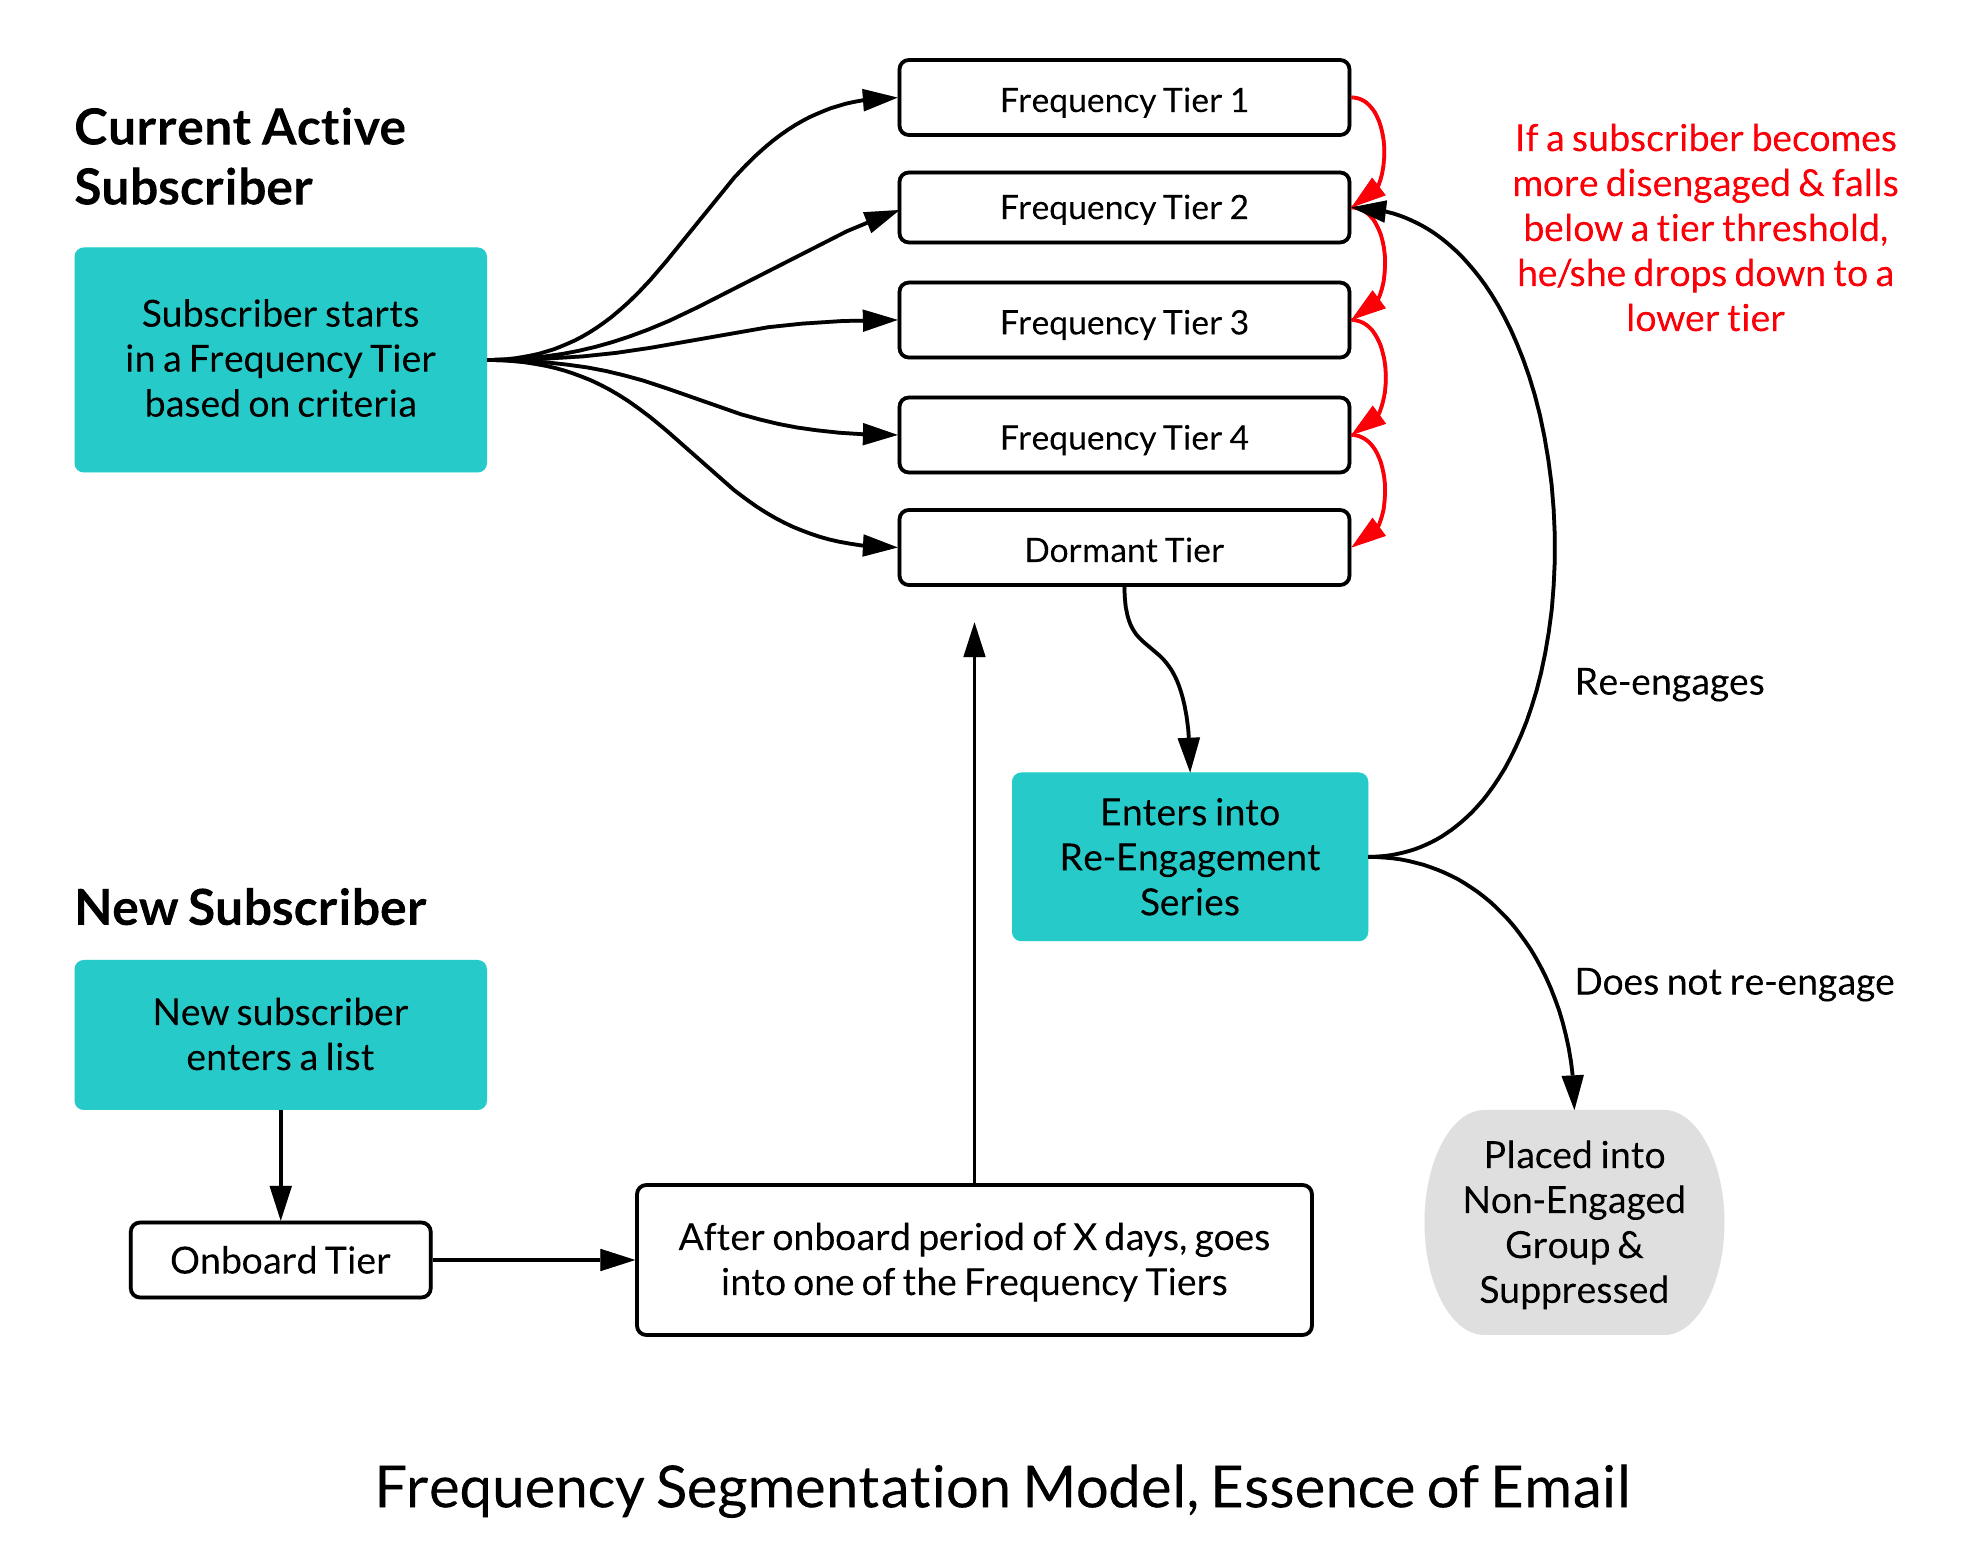 Frequency Segmentation Model, Essence of Email